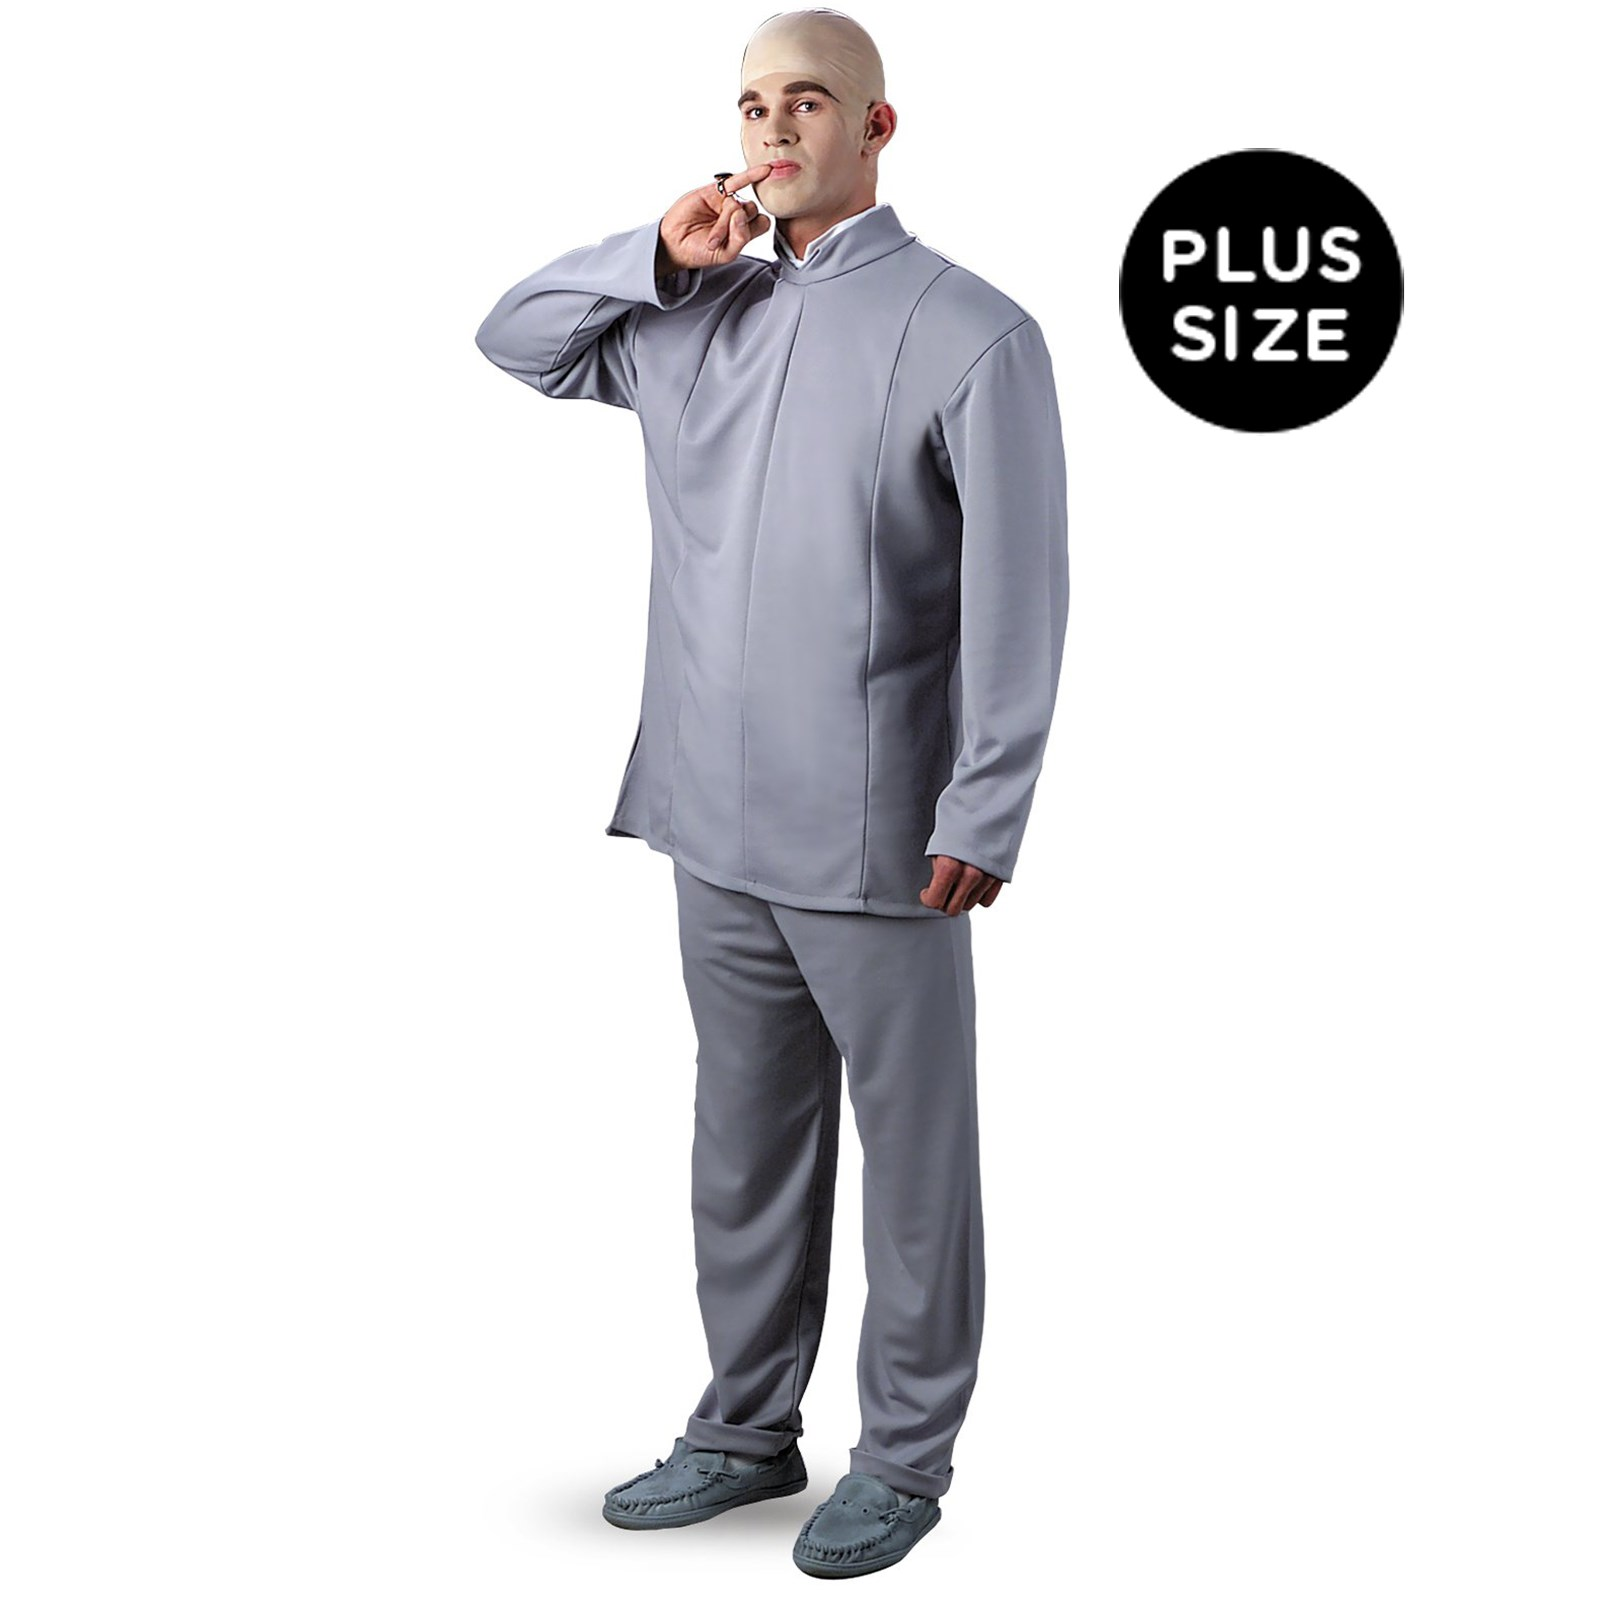 Image of Austin Powers Dr. Evil Deluxe Plus Adult Costume